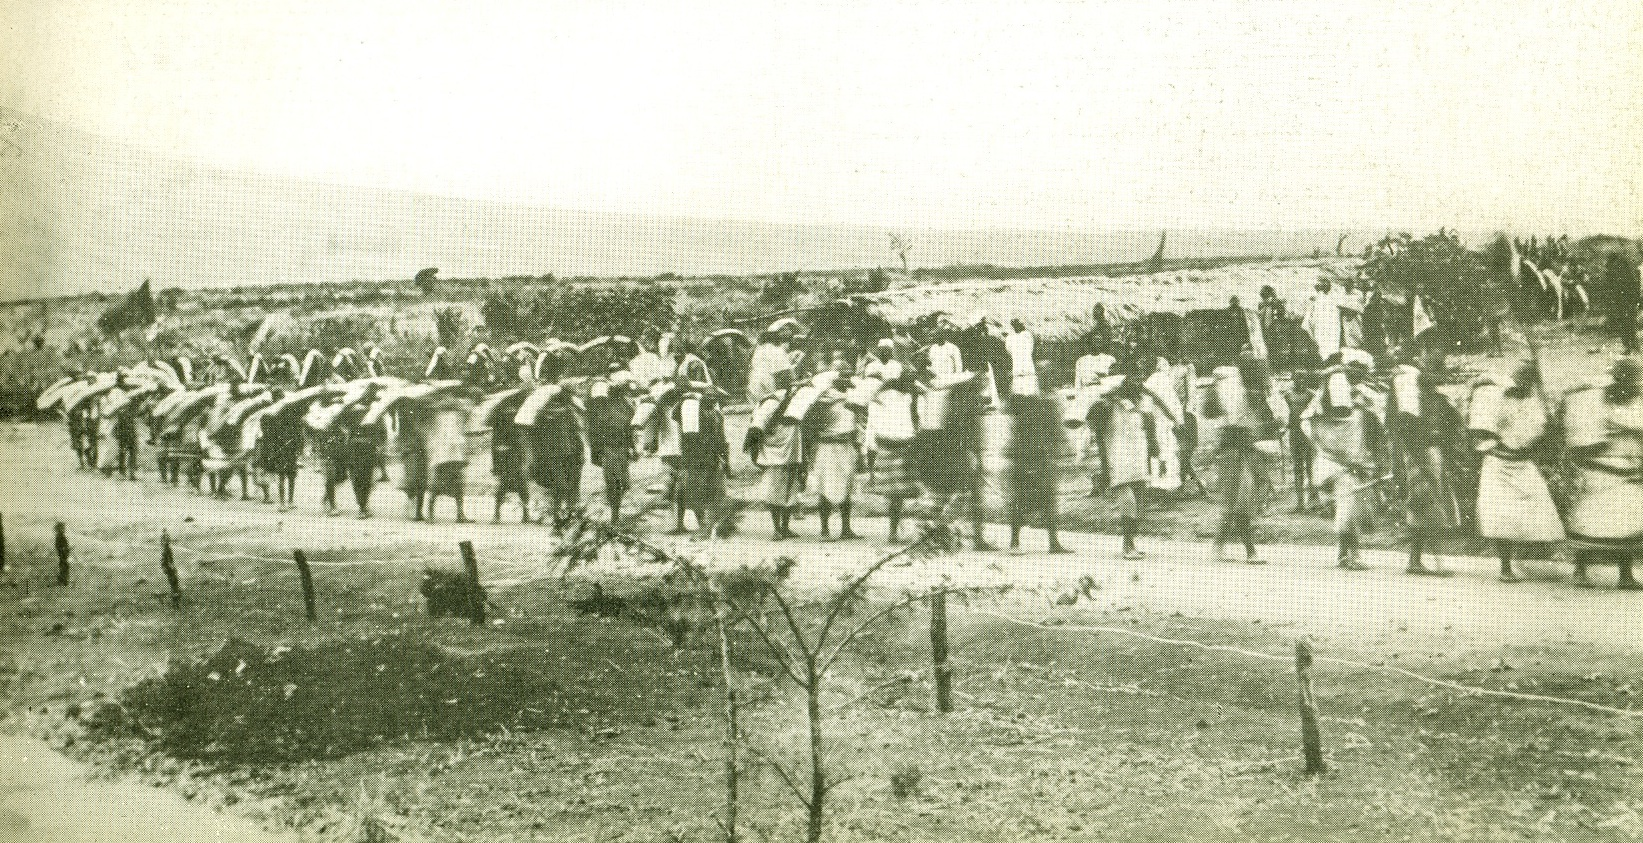 An ivory caravan at Machakos in 1895  in 1895 en route for the coast.